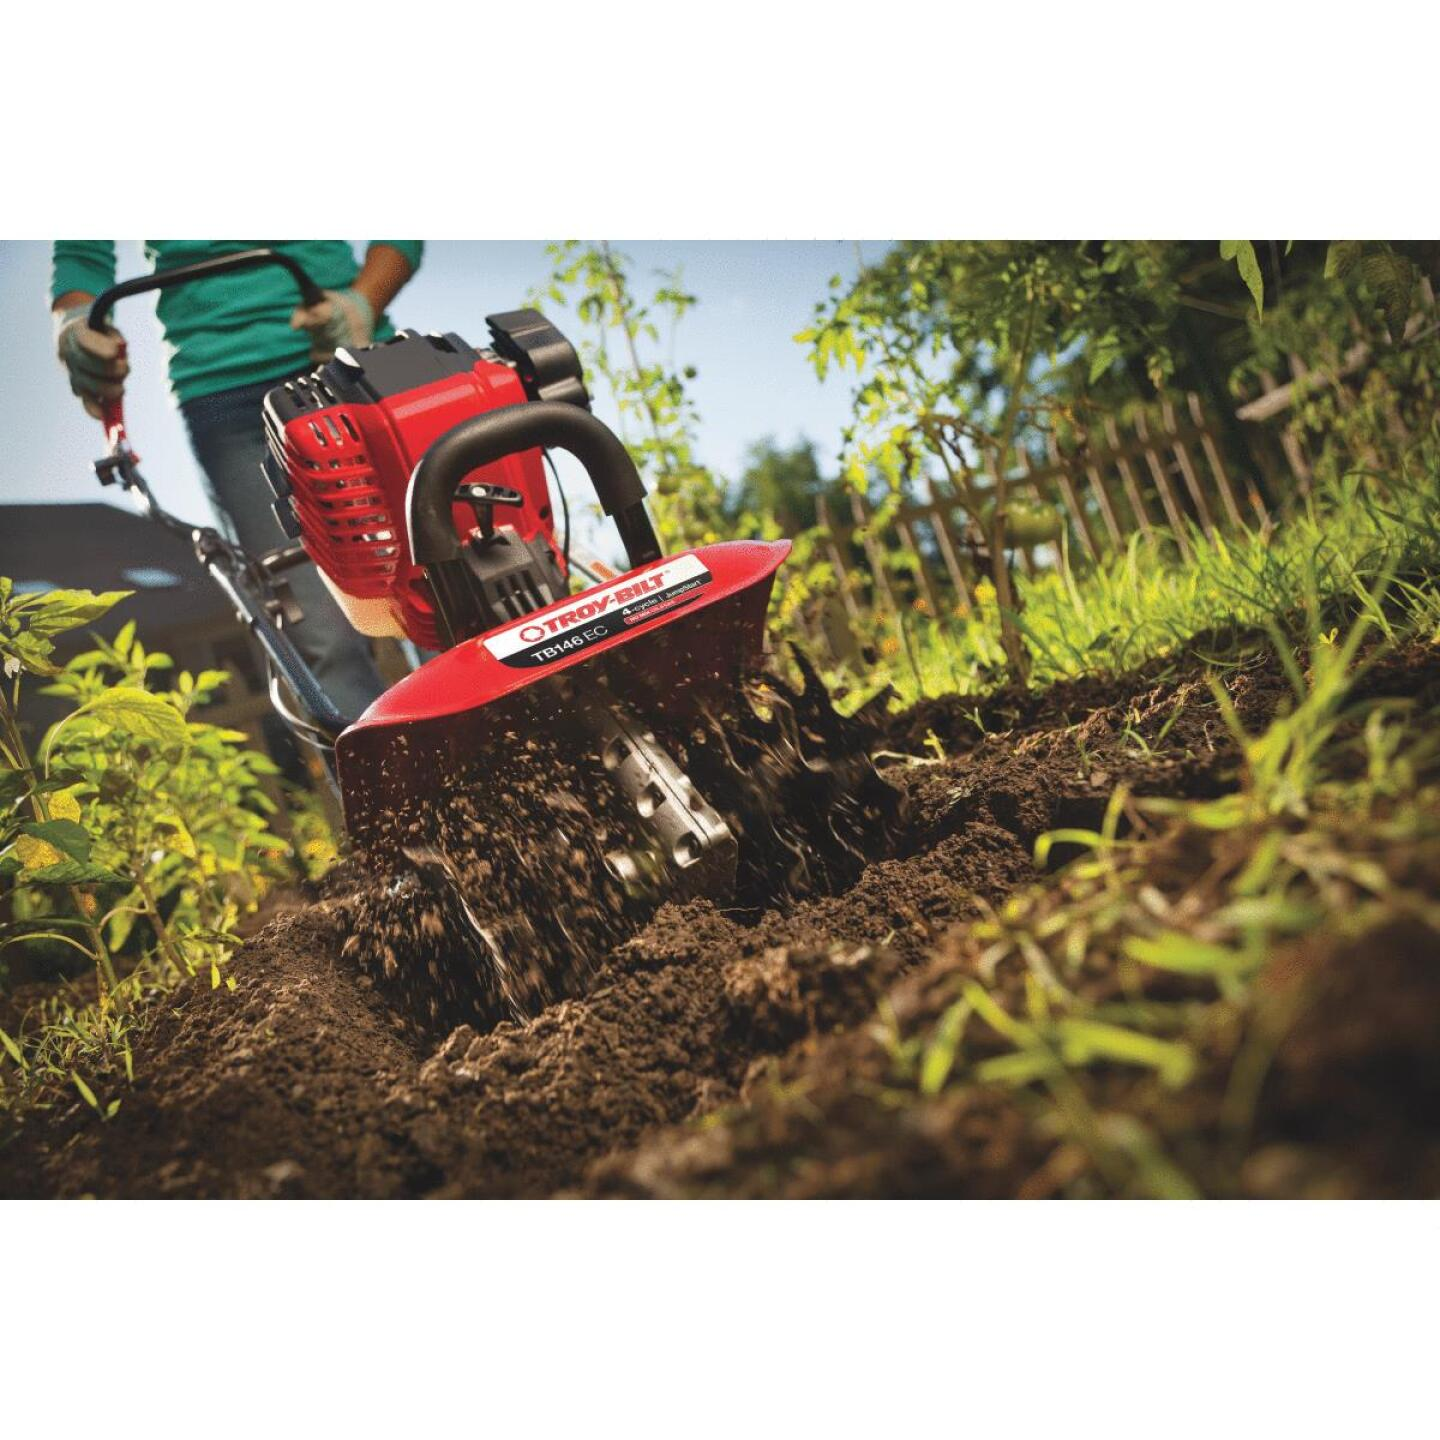 Troy-Bilt TBC304 30cc 4-Cycle Gas Cultivator Image 5